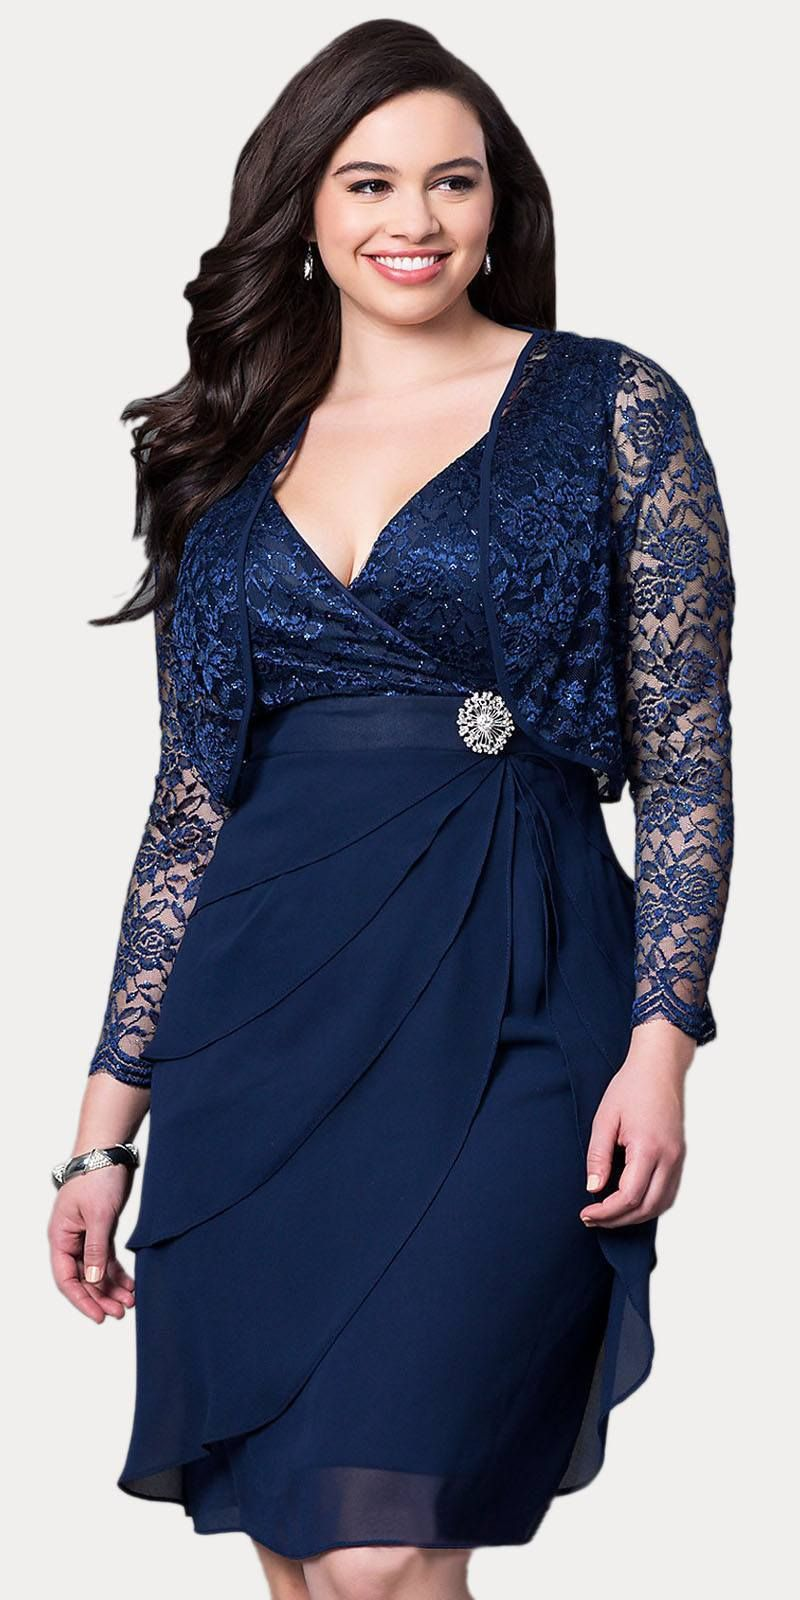 36 Plus Size Wedding Guest Dresses With Sleeves Plus Size Cocktail Plus Size Wedding Guest Dresses Plus Size Cocktail Dresses Dresses To Wear To A Wedding [ 1698 x 881 Pixel ]